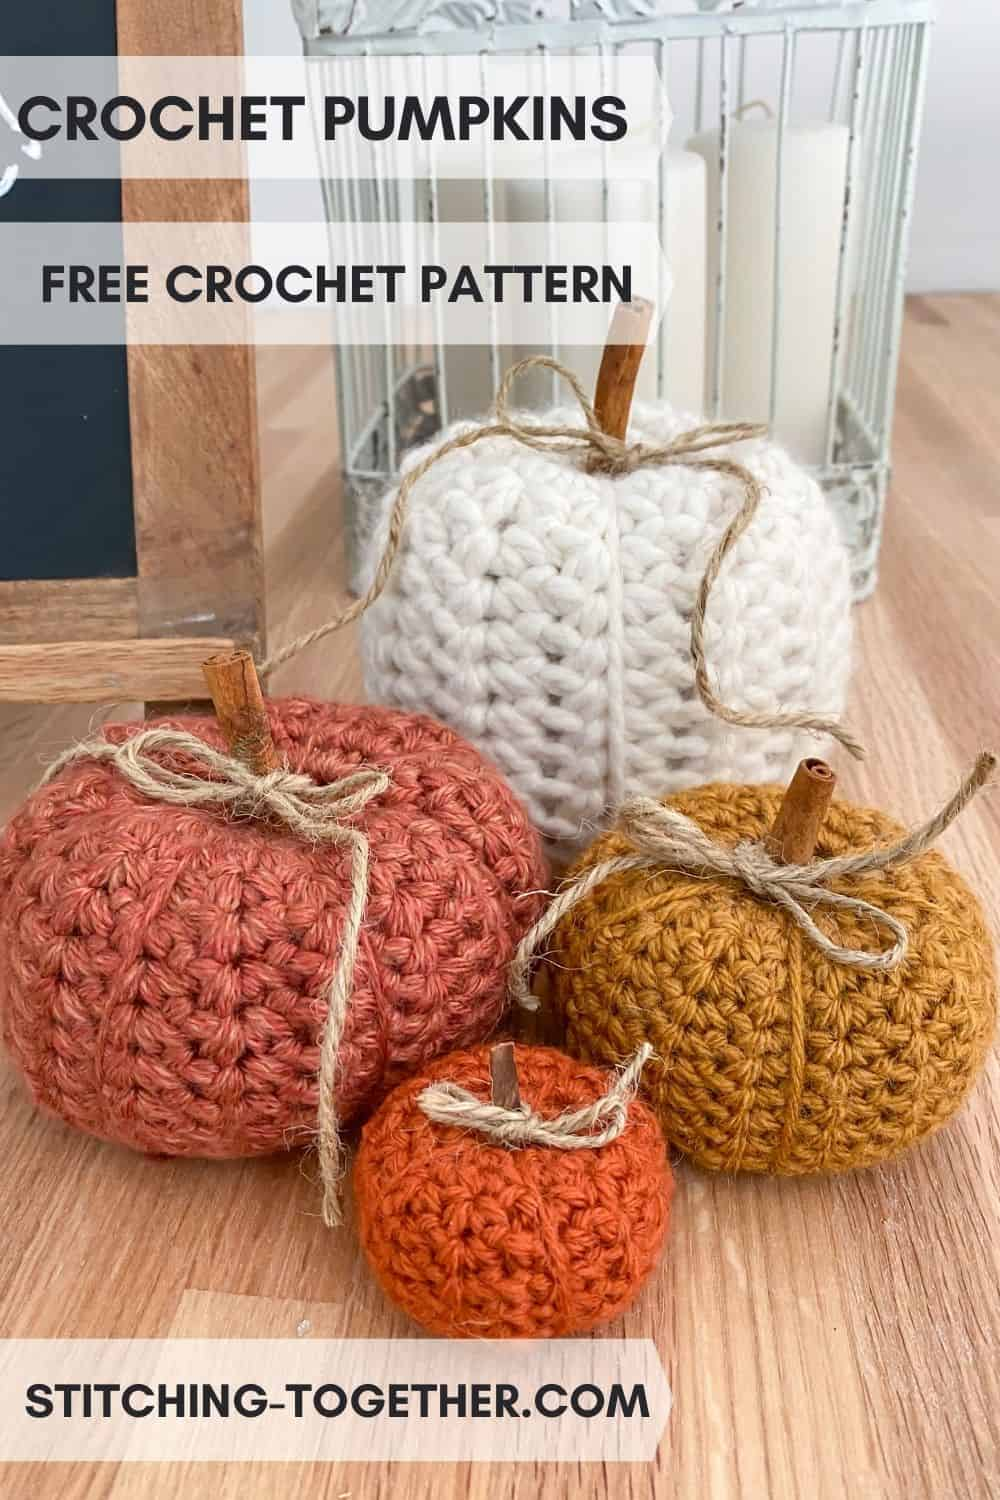 4 rustic crochet pumpkins with text on the image